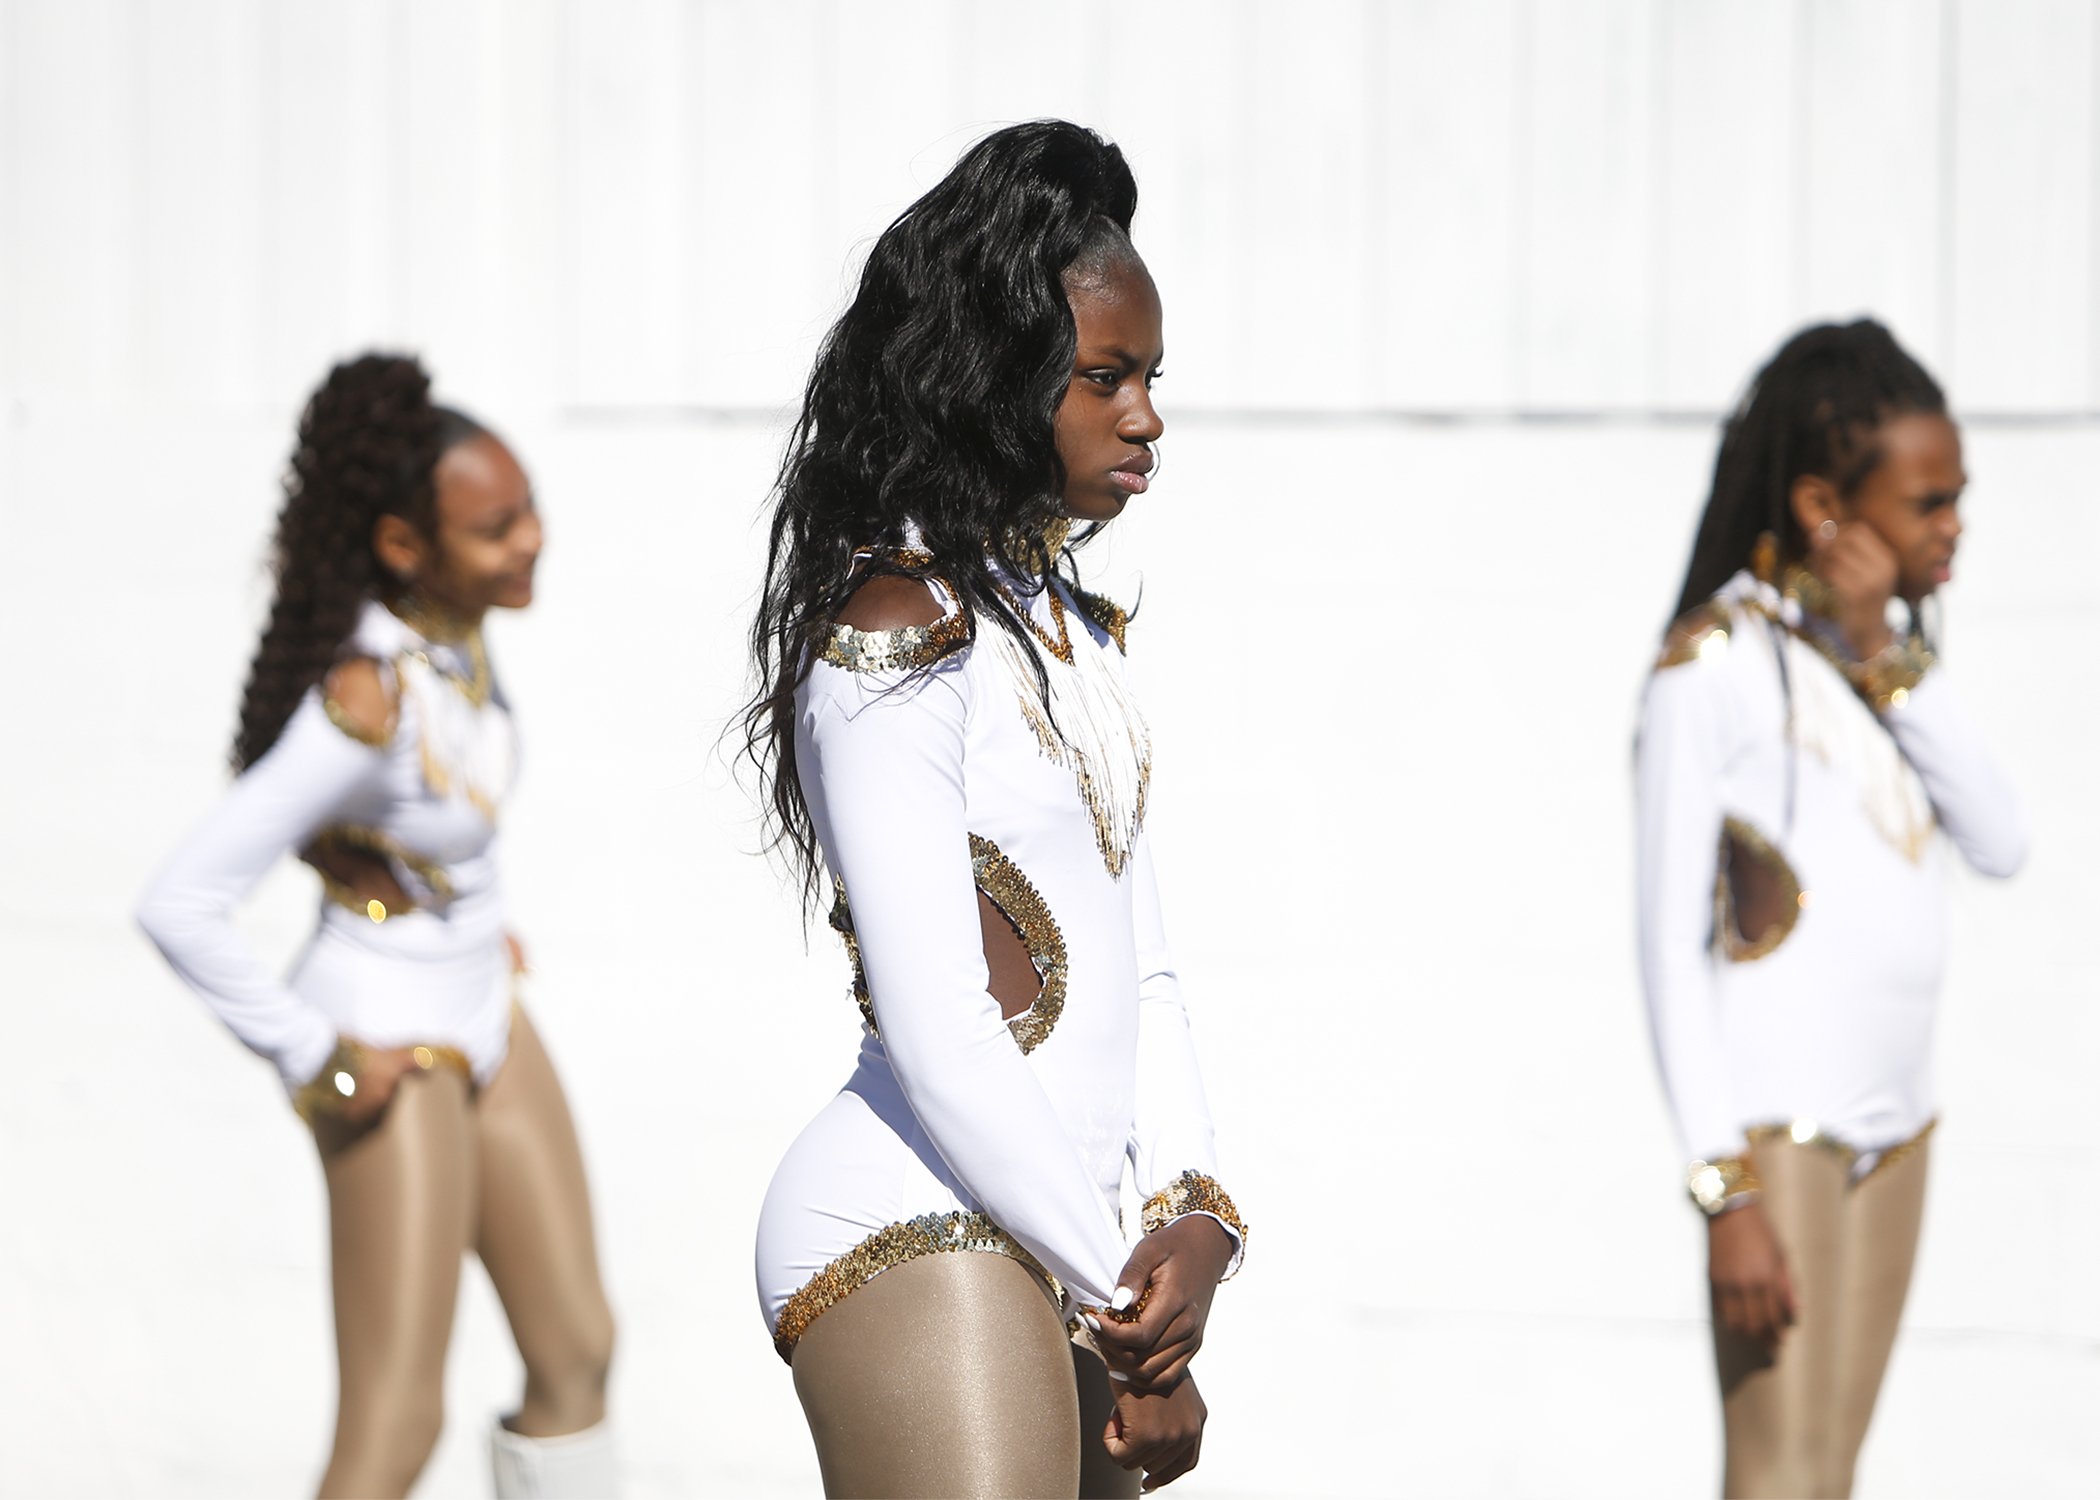 Jayla Reddick, 11, center, Keliss McClira, 11, right and Amaurie Anderson, 13, left, wait for directions during a Prancing Dancerettes rehearsal before performing at the 30th Annual City of Tampa Martin Luther King Day Parade on Monday, January 21, 2019 in Tampa, Florida.